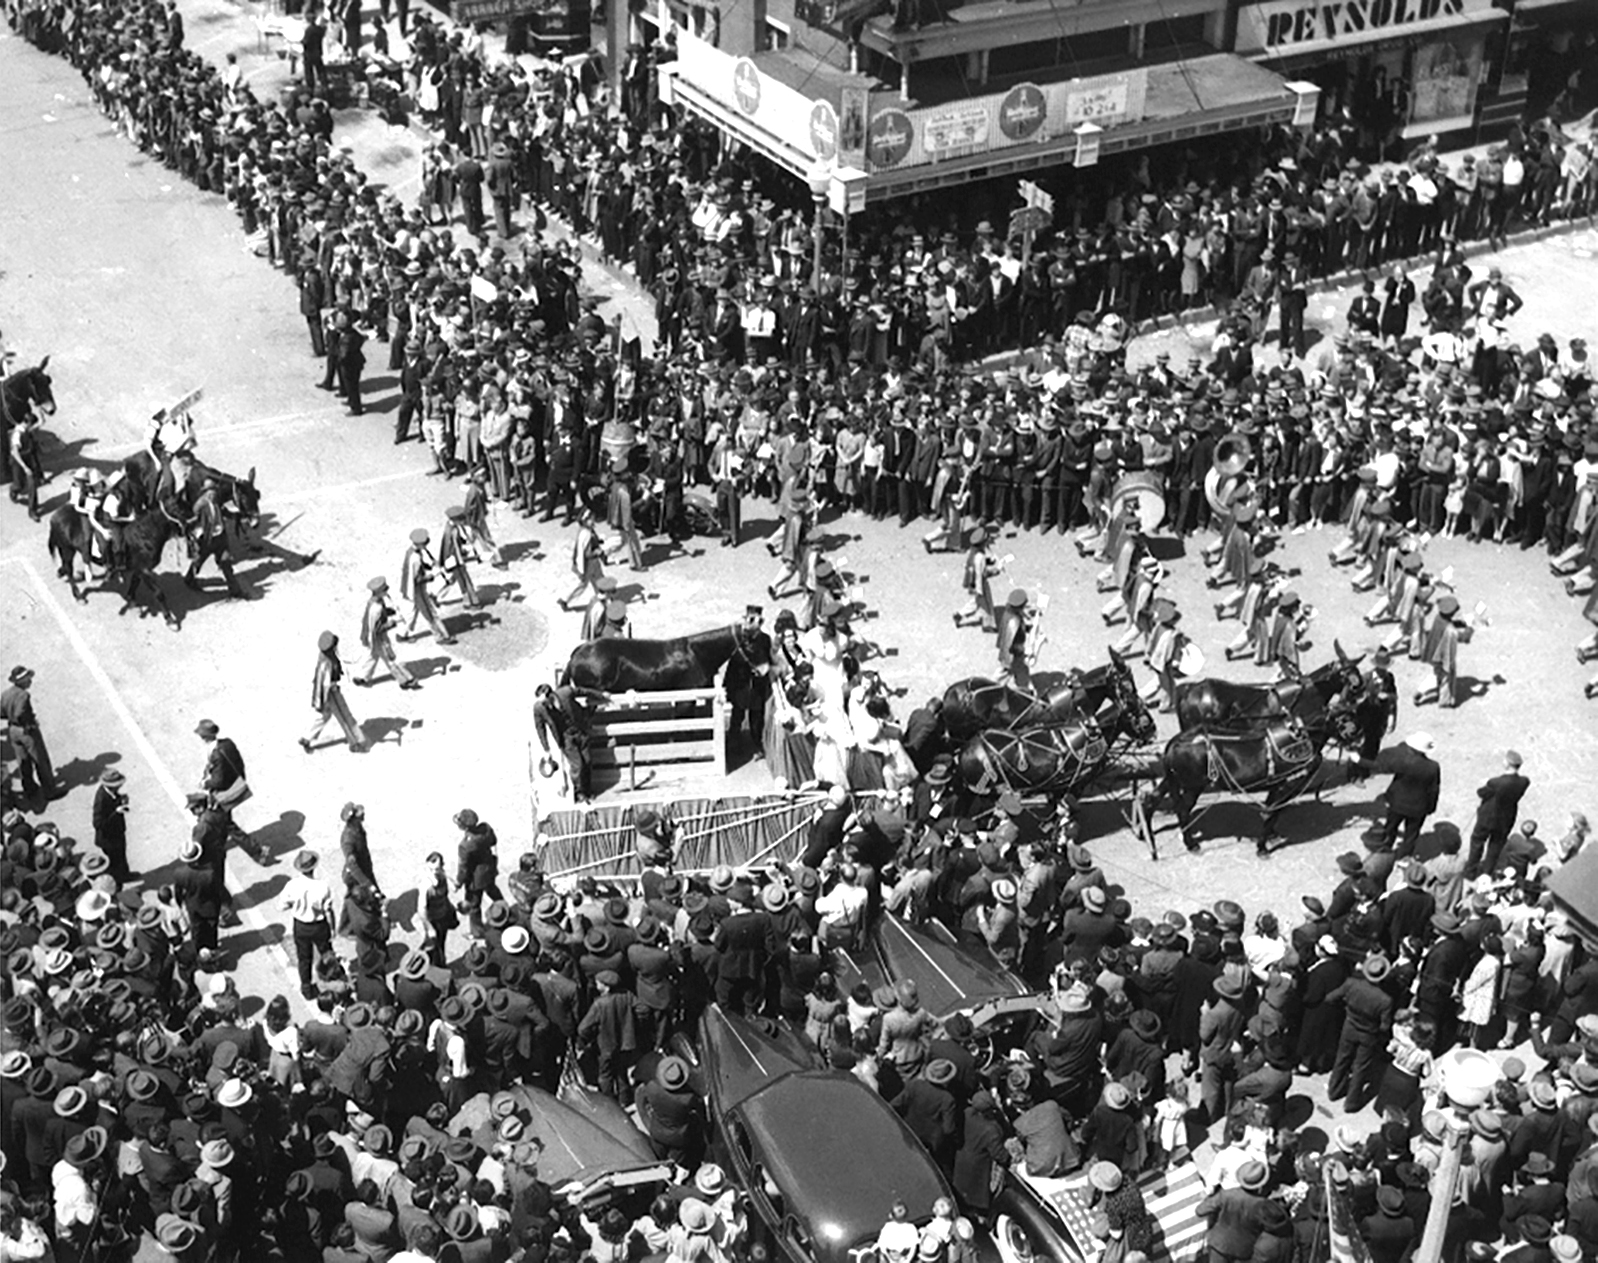 Historical black and white photo, high vantage point view of the Mule Day parade in downtown Columbia, TN